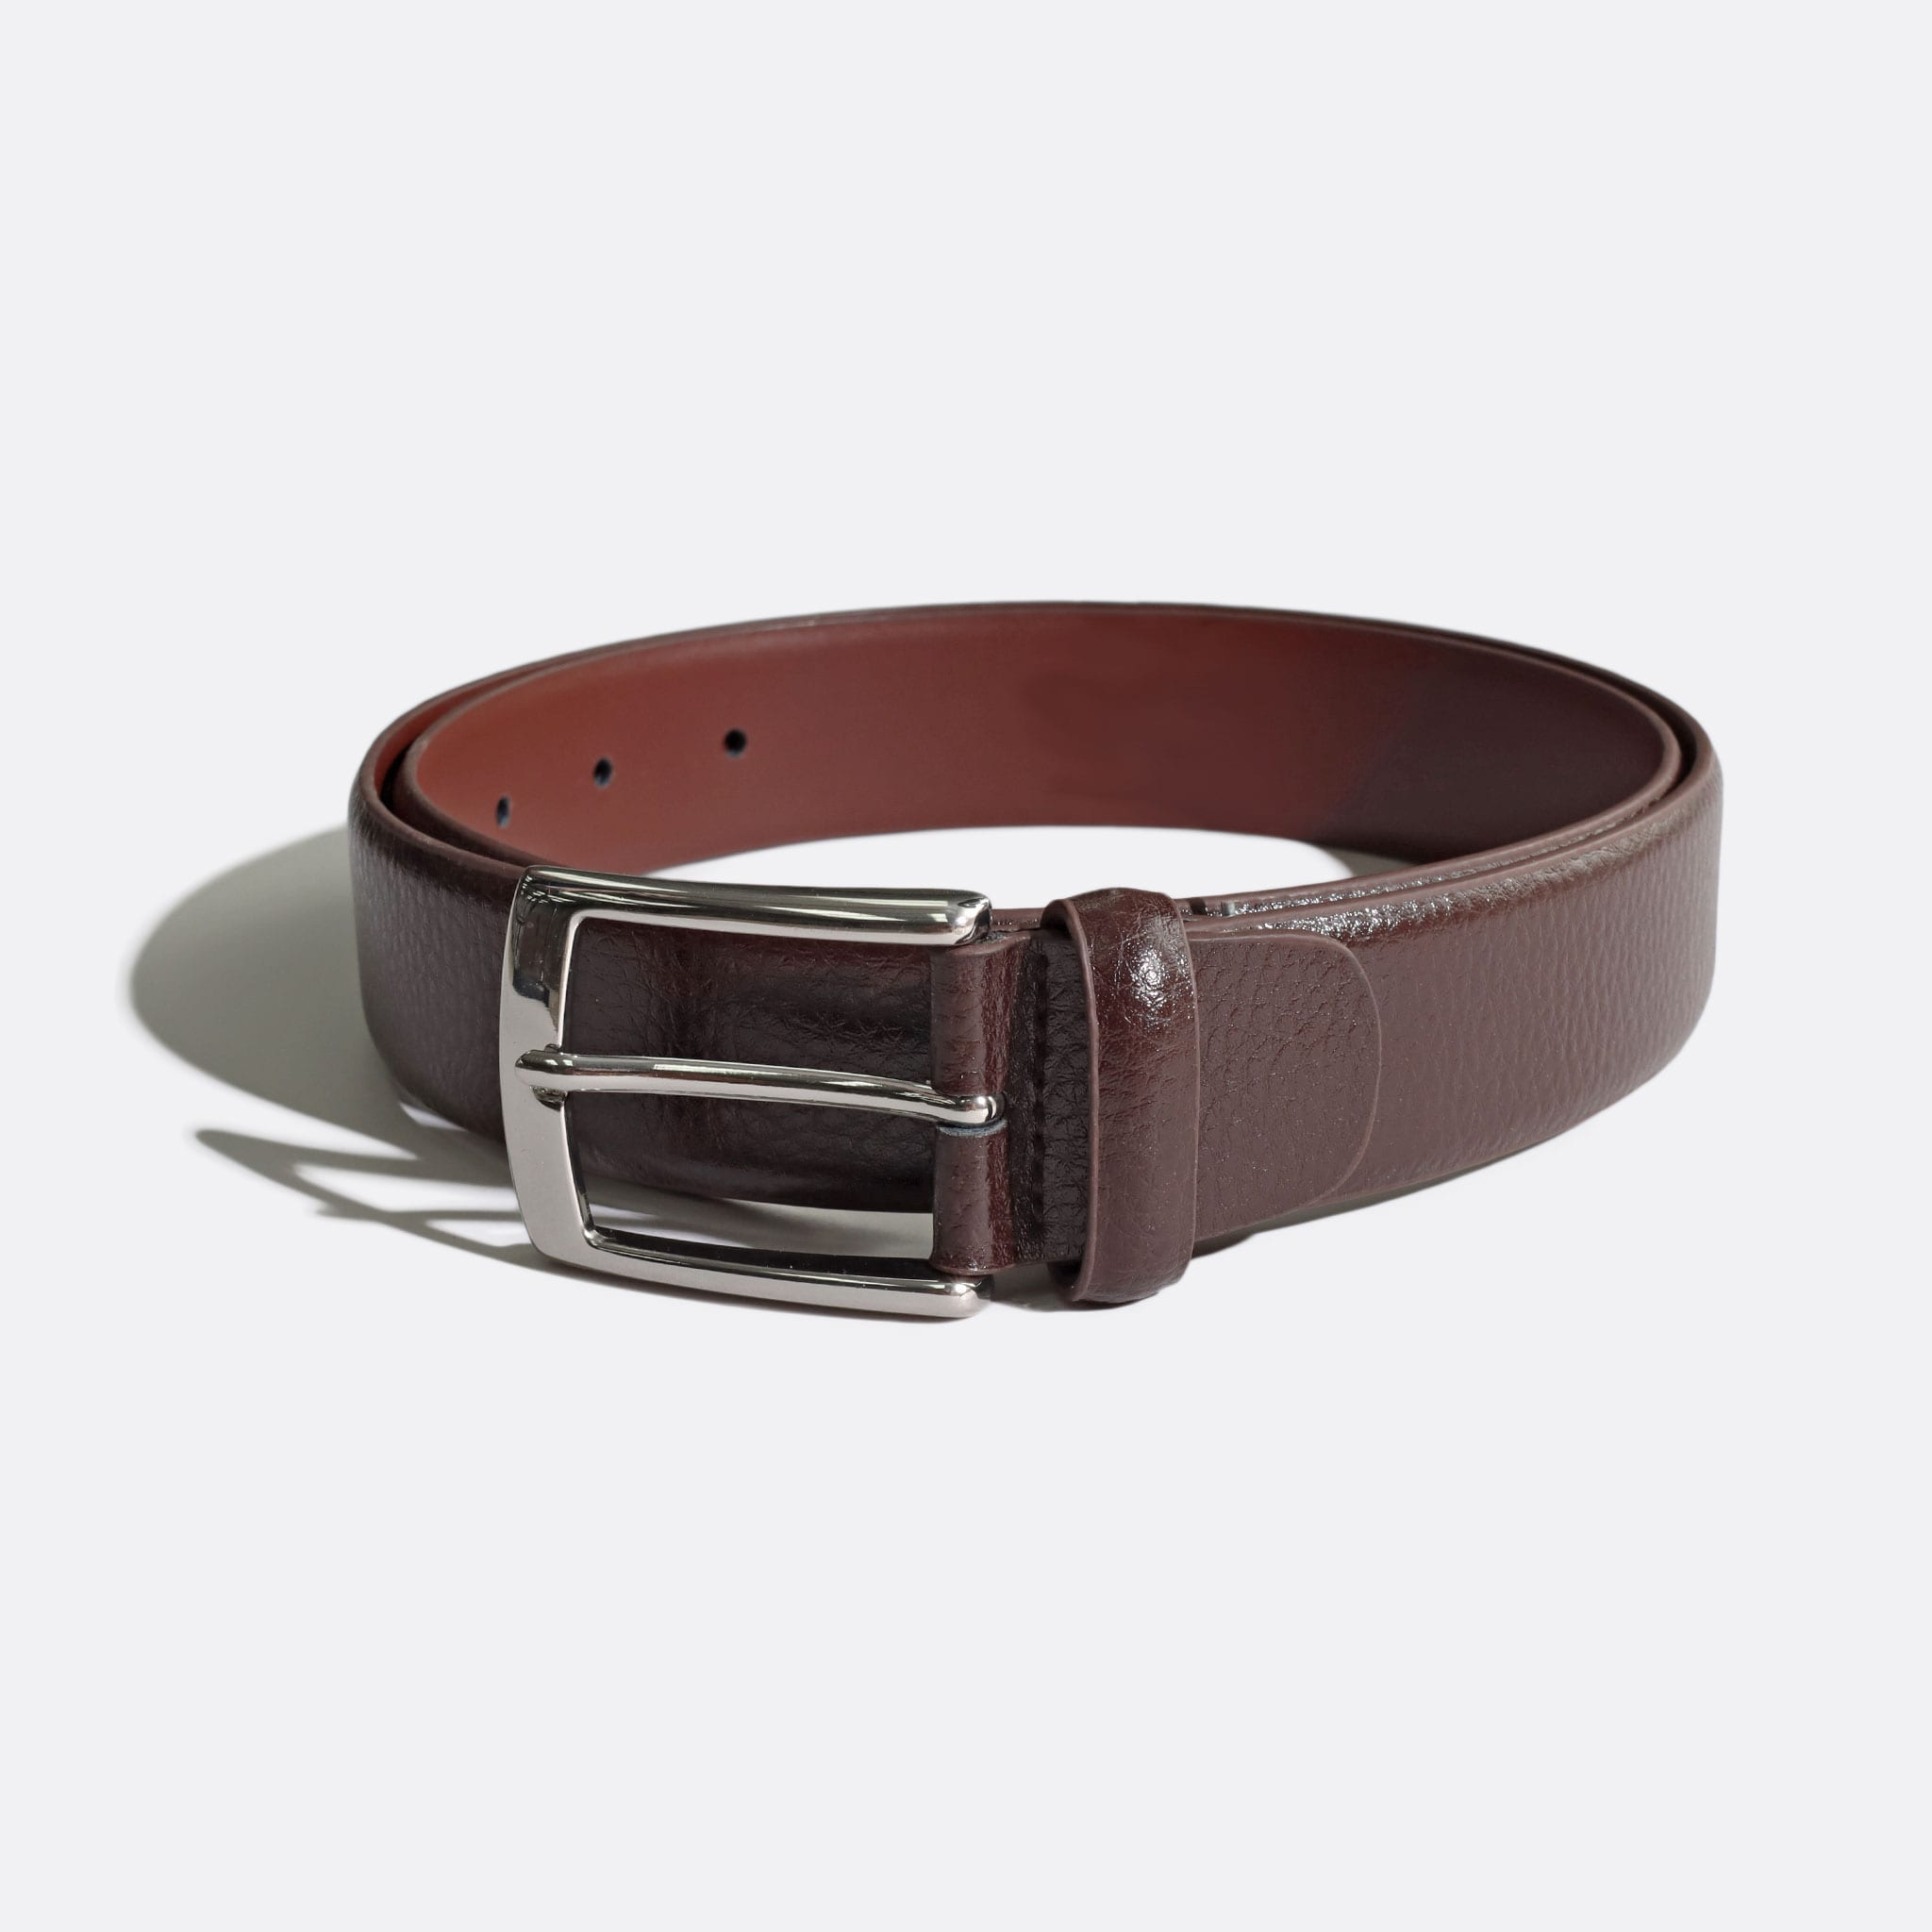 Far Afield Classic Leather Belt a Brown Leather Classic Leather Belt Heritage Inspired